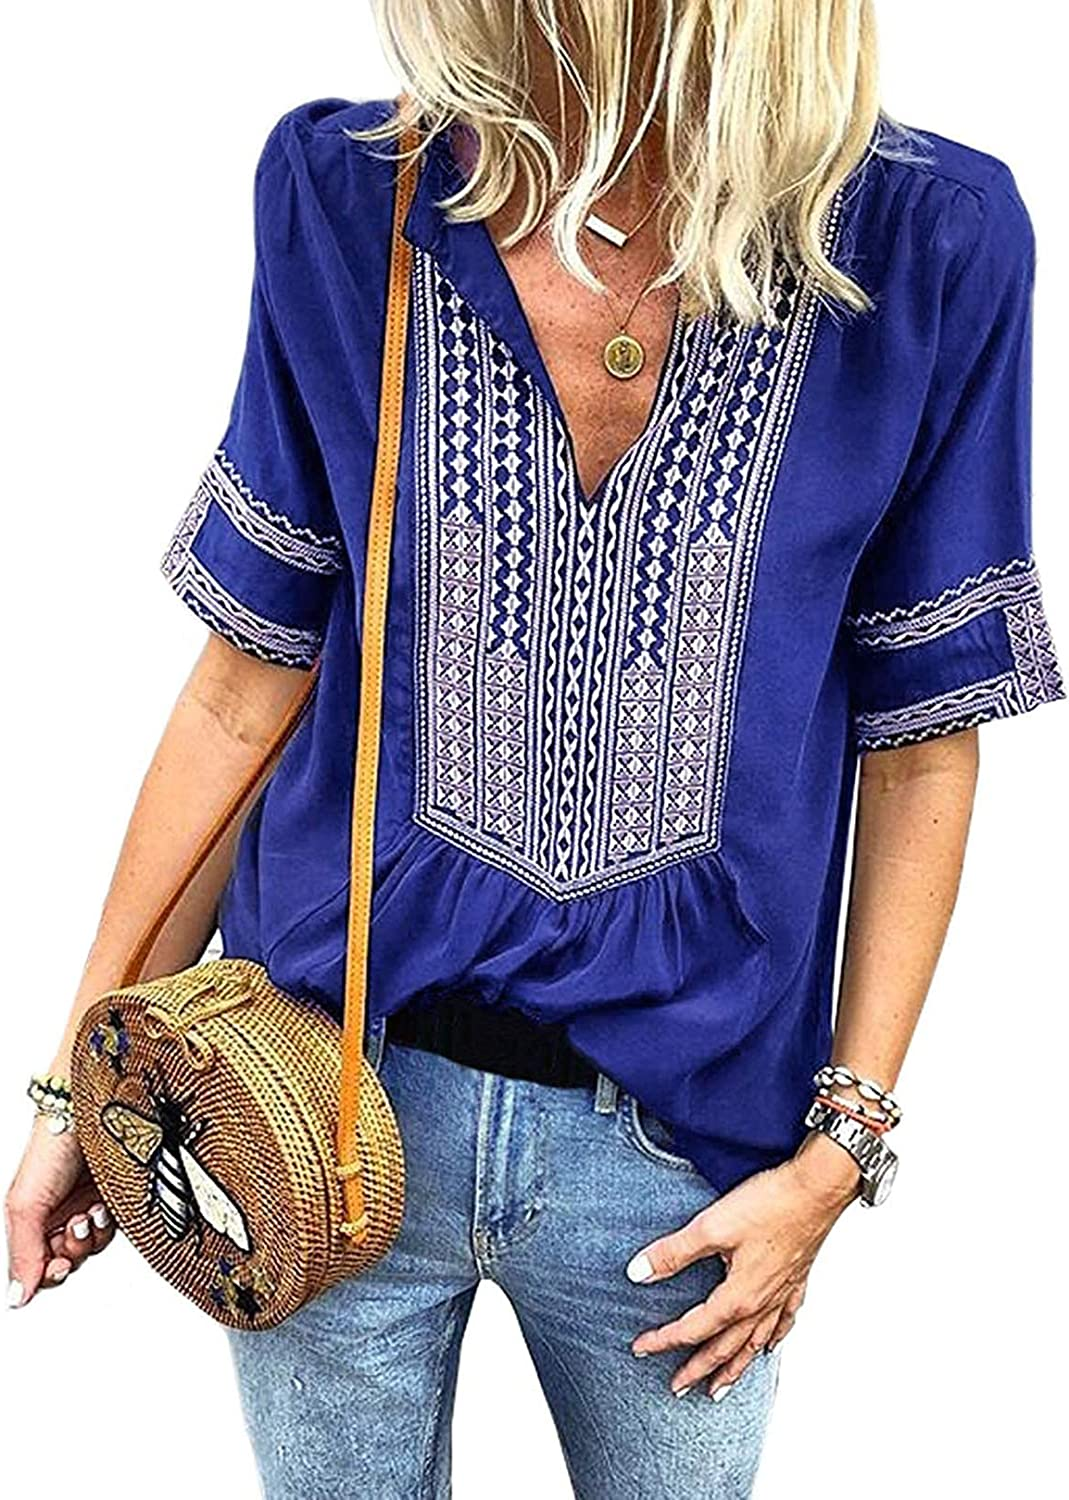 Chase Secret Womens Casual V Neck Shirt Boho Embroidered Print Short/Long Sleeve Tops Loose Blouse (S-XXL)